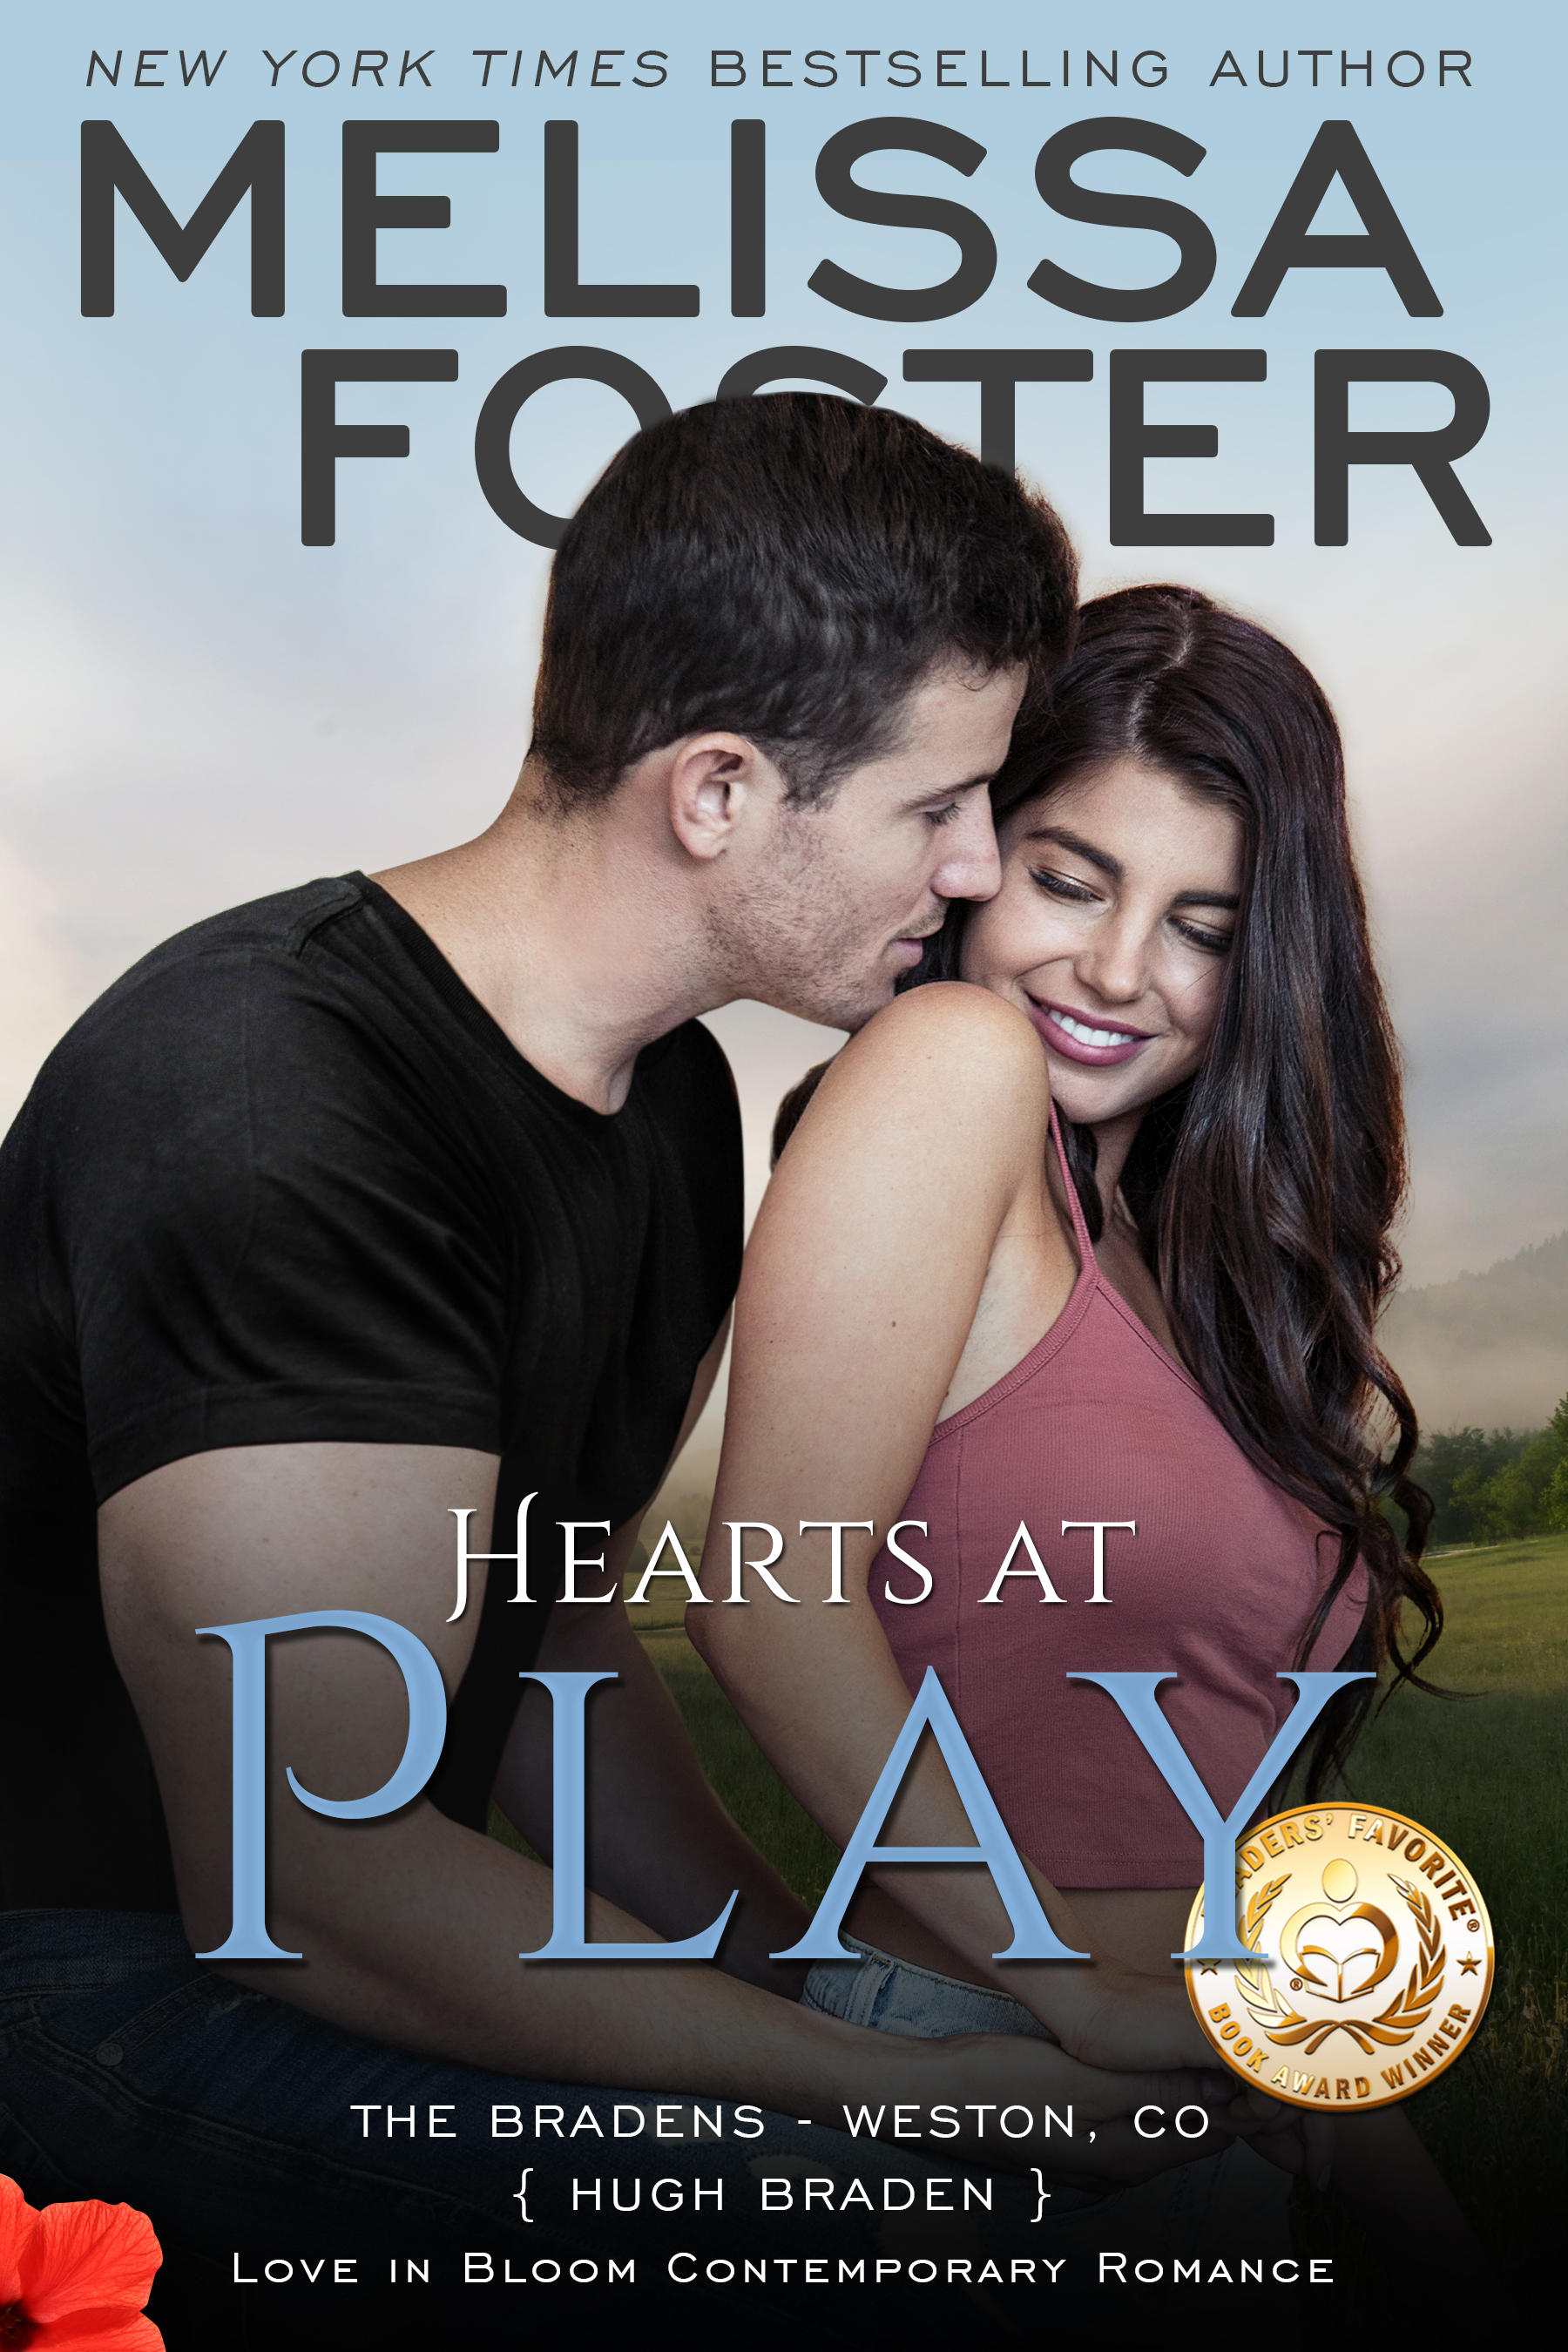 Hearts at Play (Love in Bloom #9; Love in Bloom: The Bradens #6; The Bradens at Weston, CO #6)